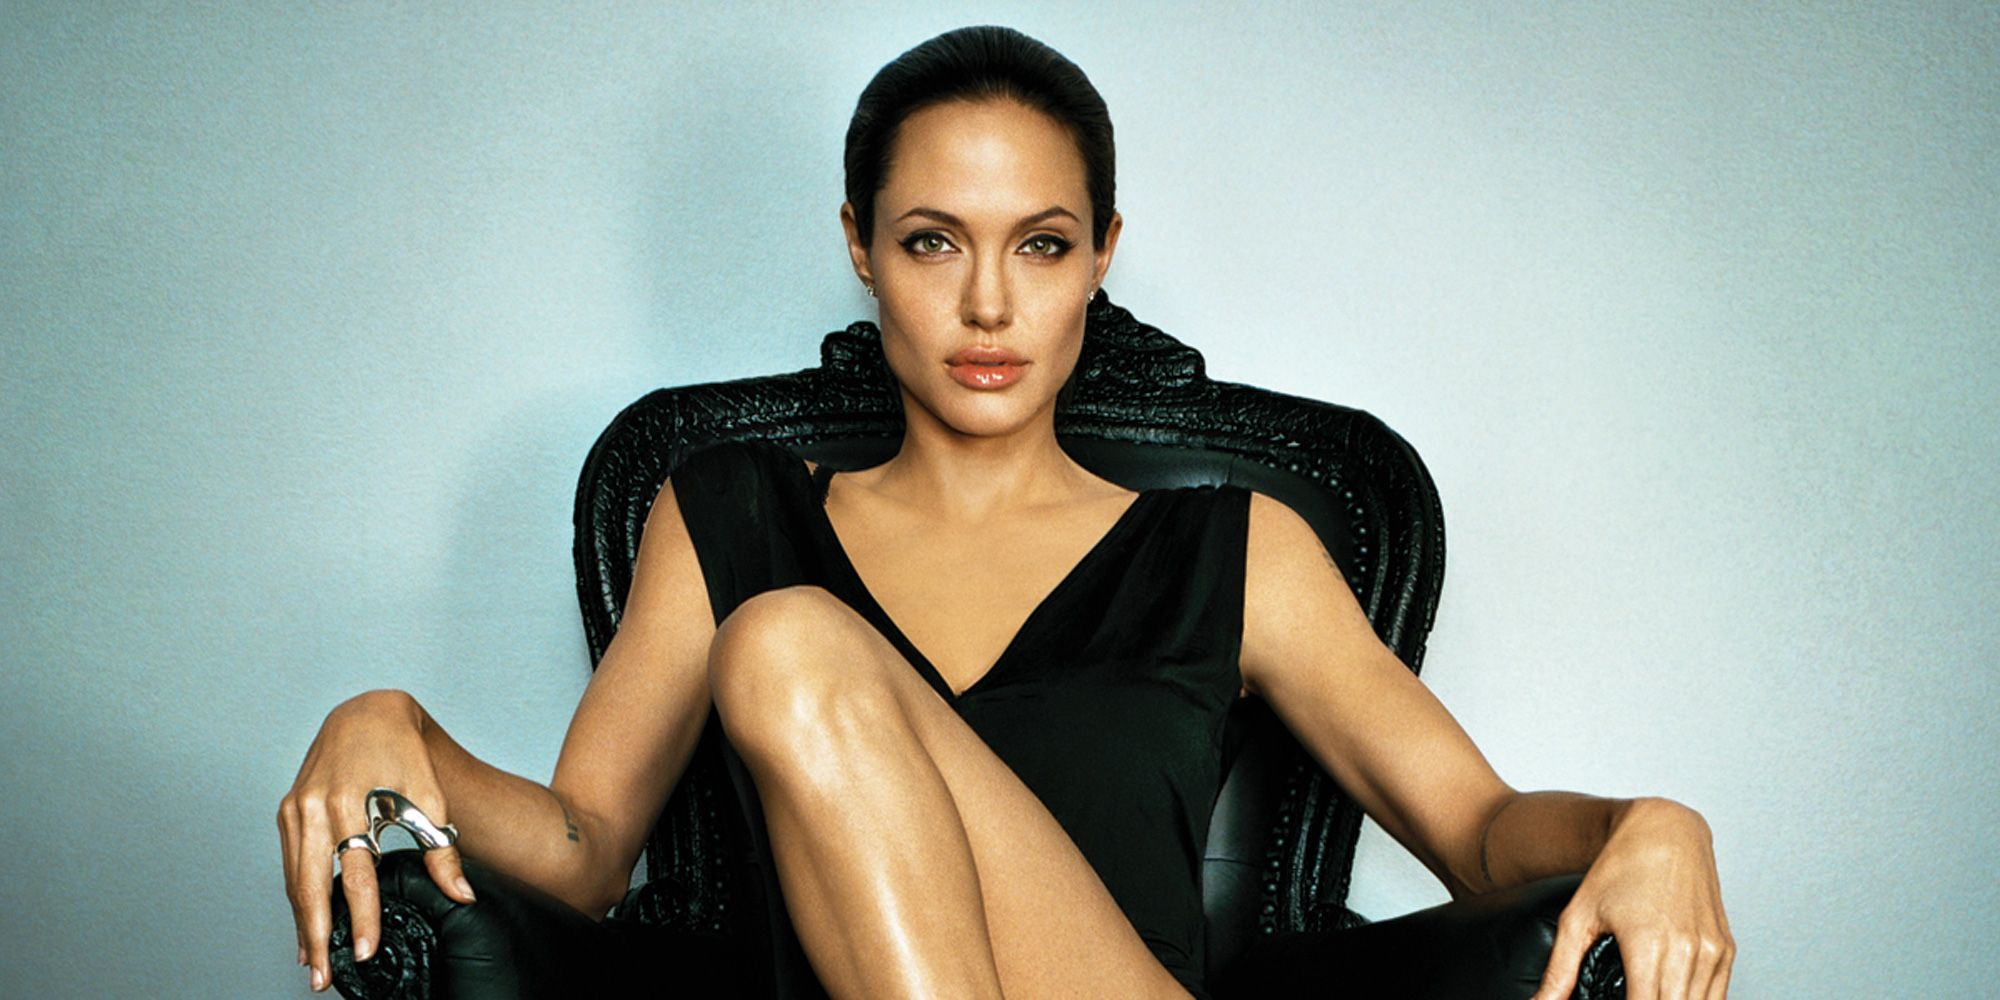 Angelina Jolie Dies for Our Sins